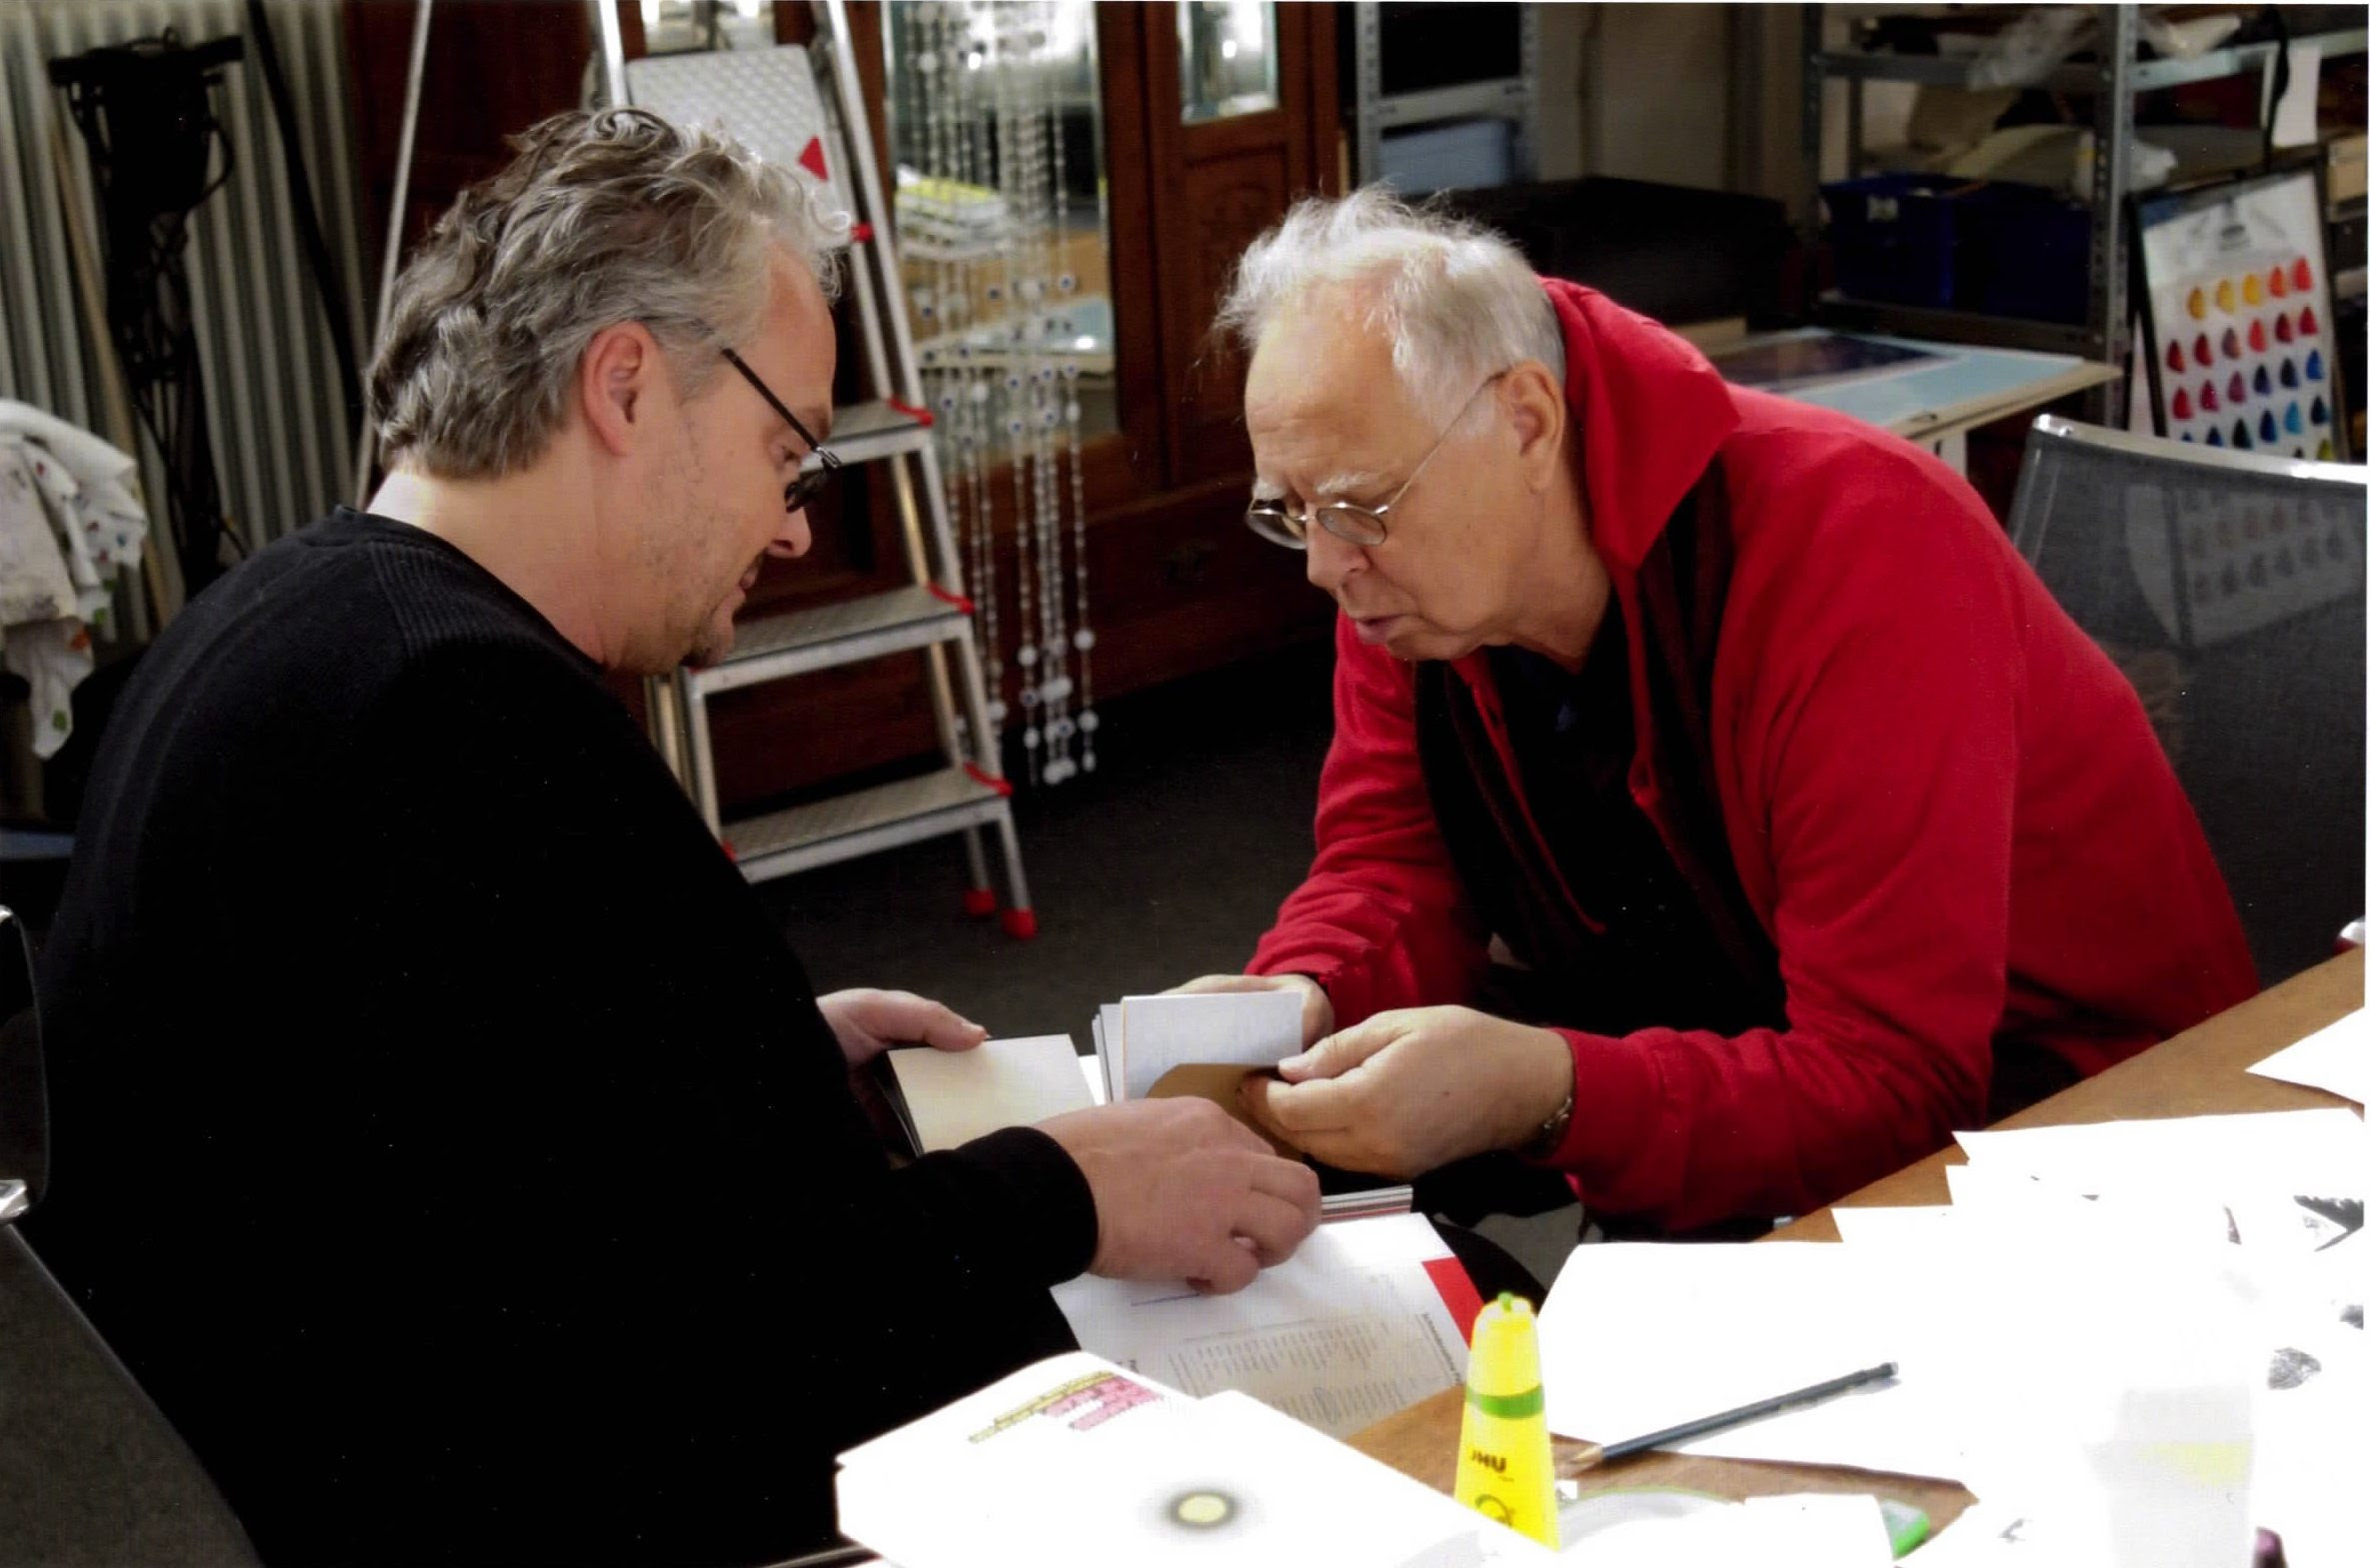 Artist Sigmar Polke and Gallerist Mike Karstens review work related documents and images in studio